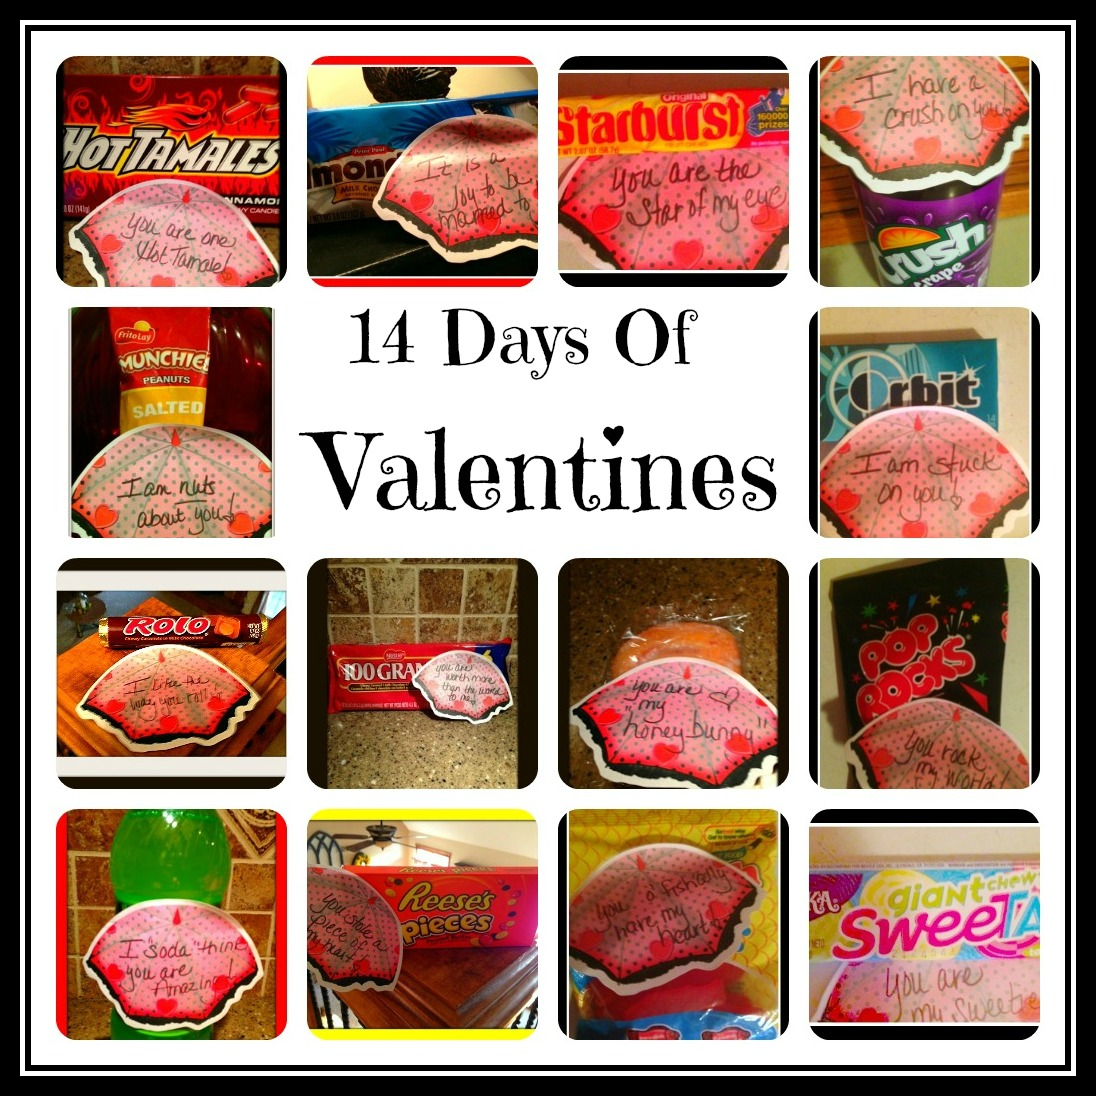 Farming on faith 14 days of valentines gifts for Best online valentines gifts